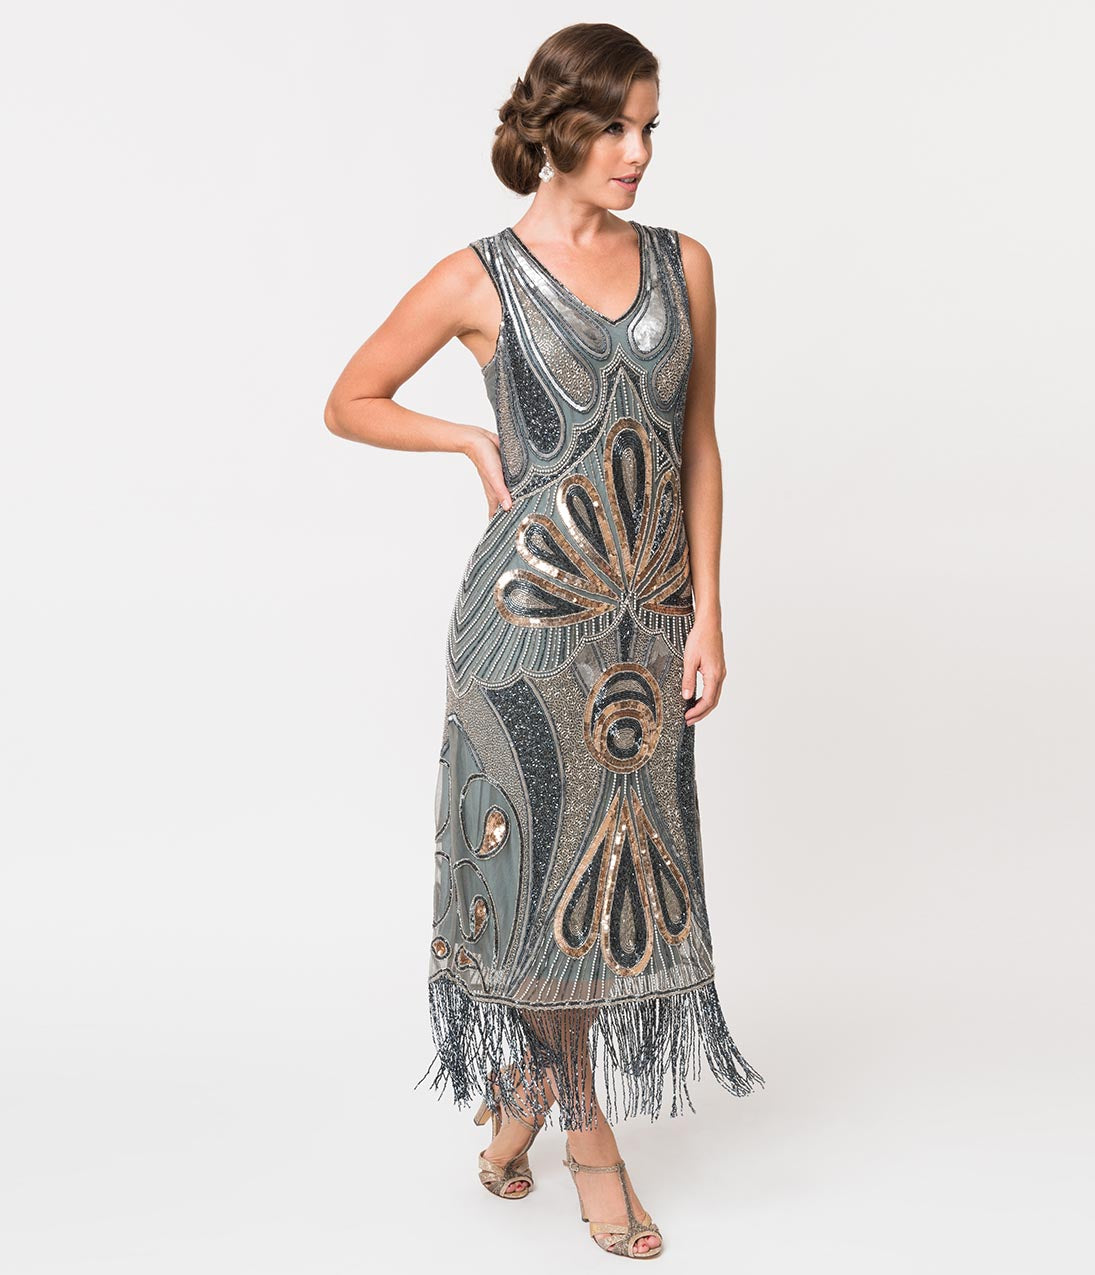 1920s Evening Dresses & Formal Gowns 1920S Style Silver Grey  Gold Beading Silk Long Flapper Dress $358.00 AT vintagedancer.com